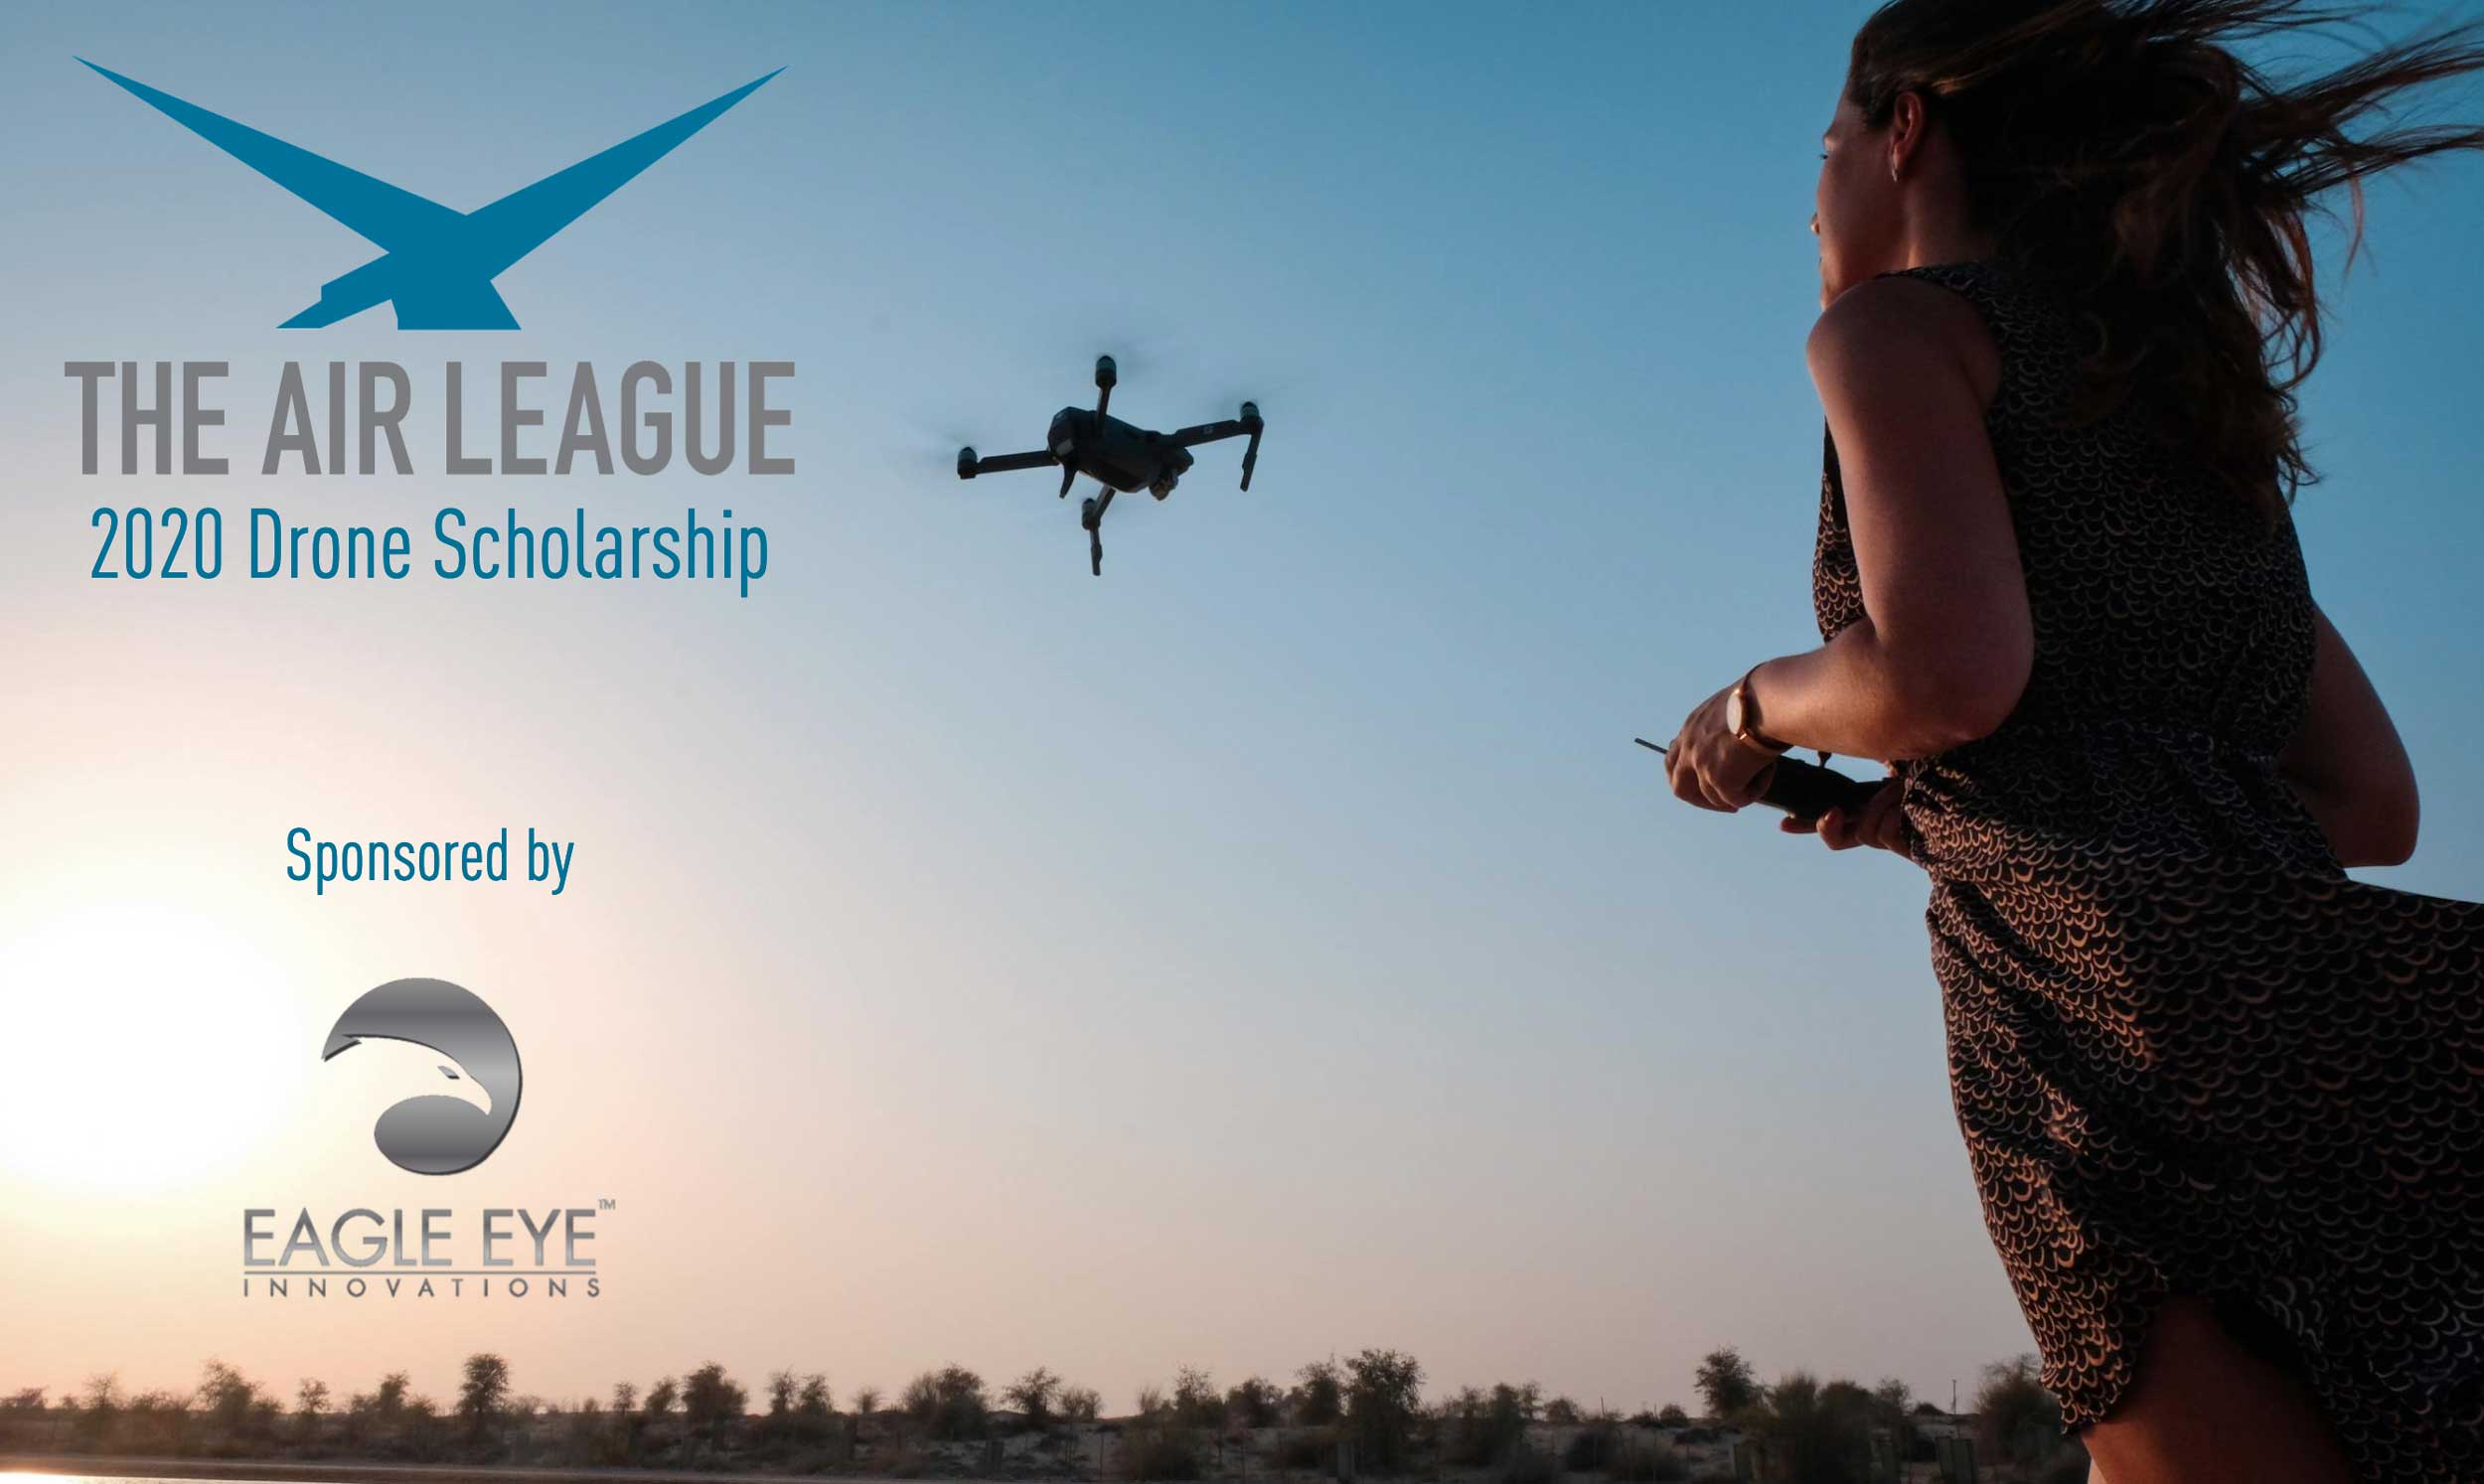 Air League Drone Scholarship 2020